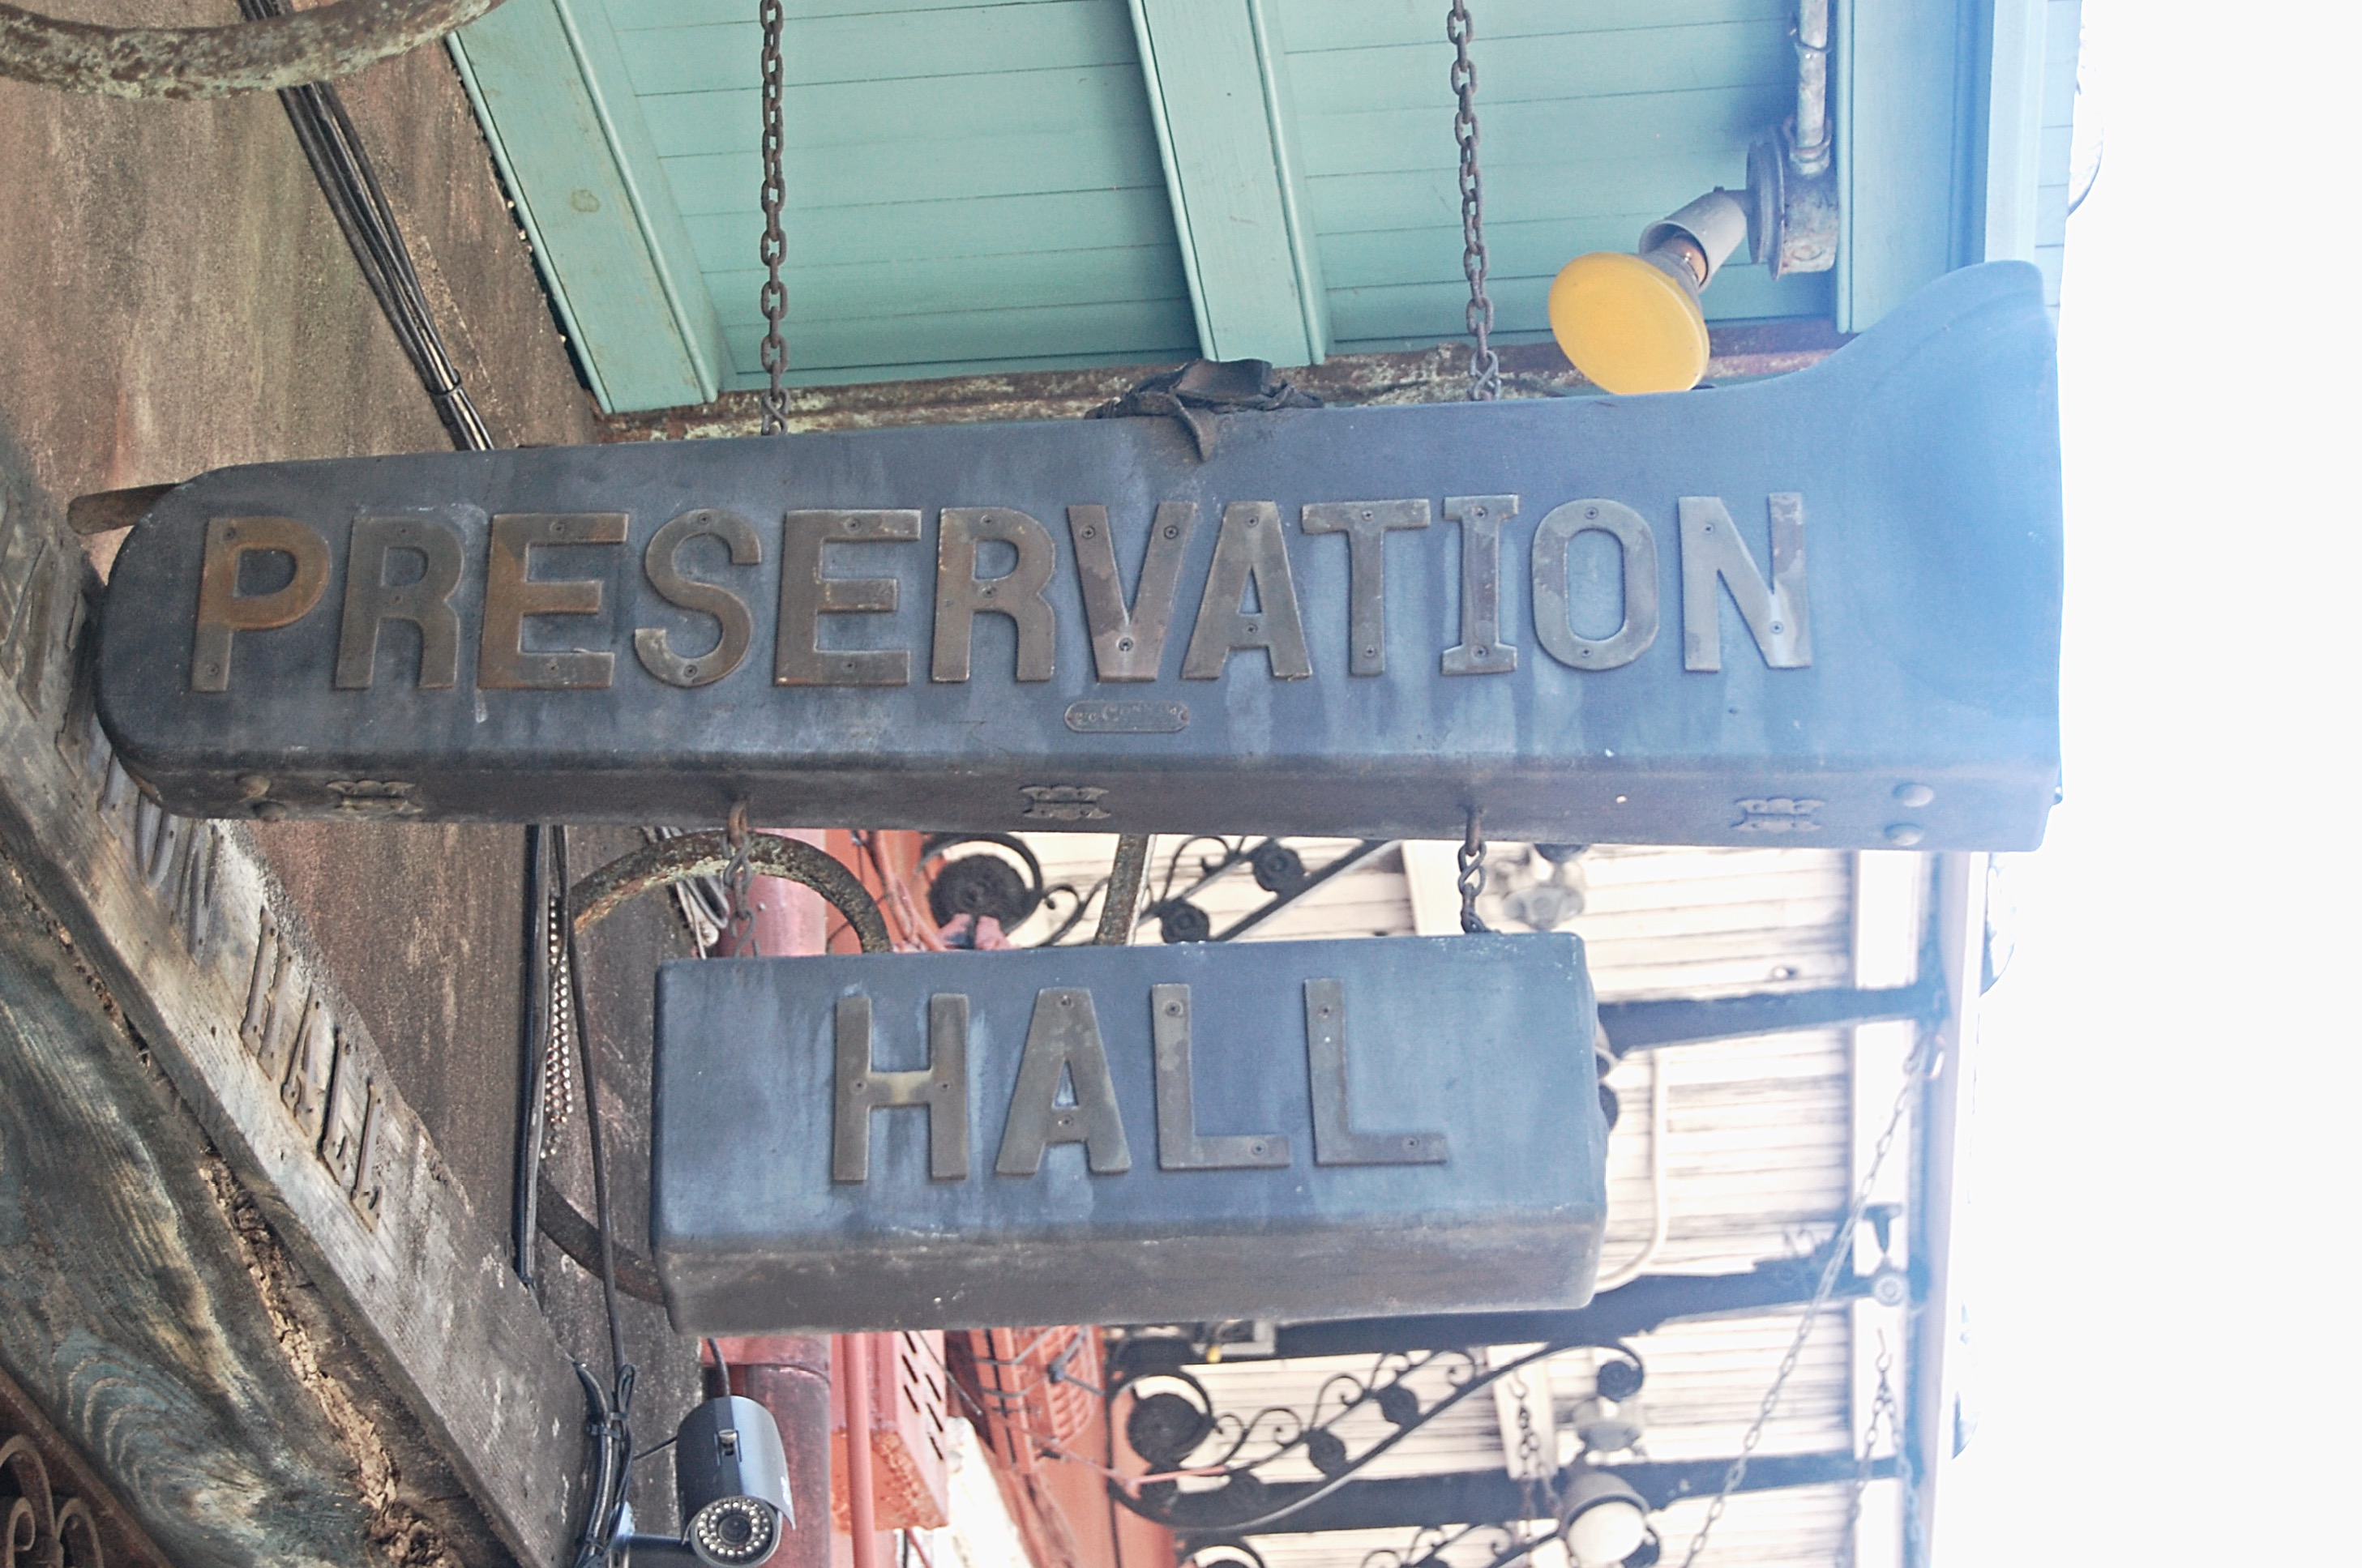 Preservation Hall, New Orleans, LA